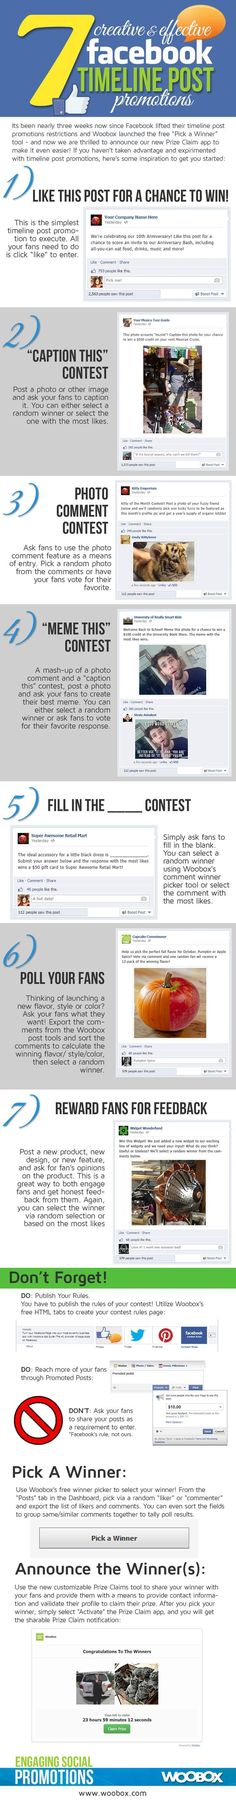 7 creative and effective Facebook timeline post promotions